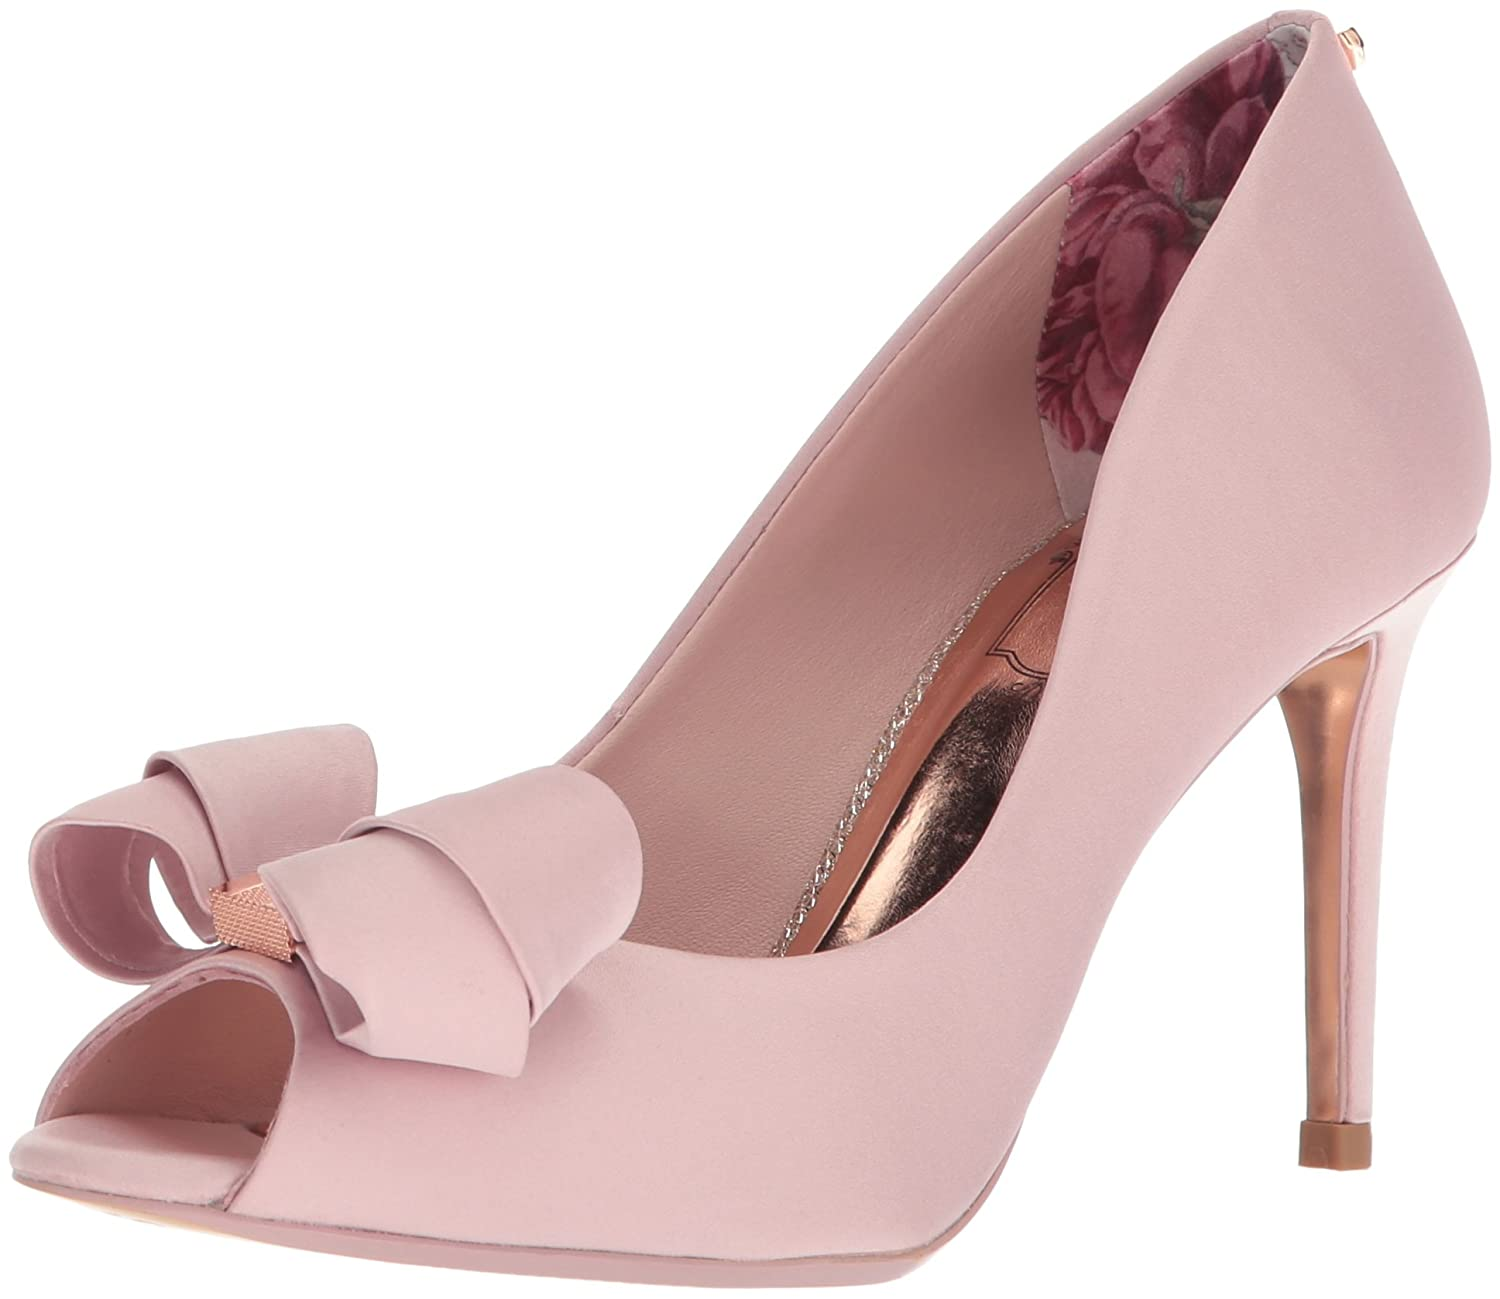 Ted Baker Women's Vylett Pump B074Q1FVLH 6 B(M) US|Light Pink